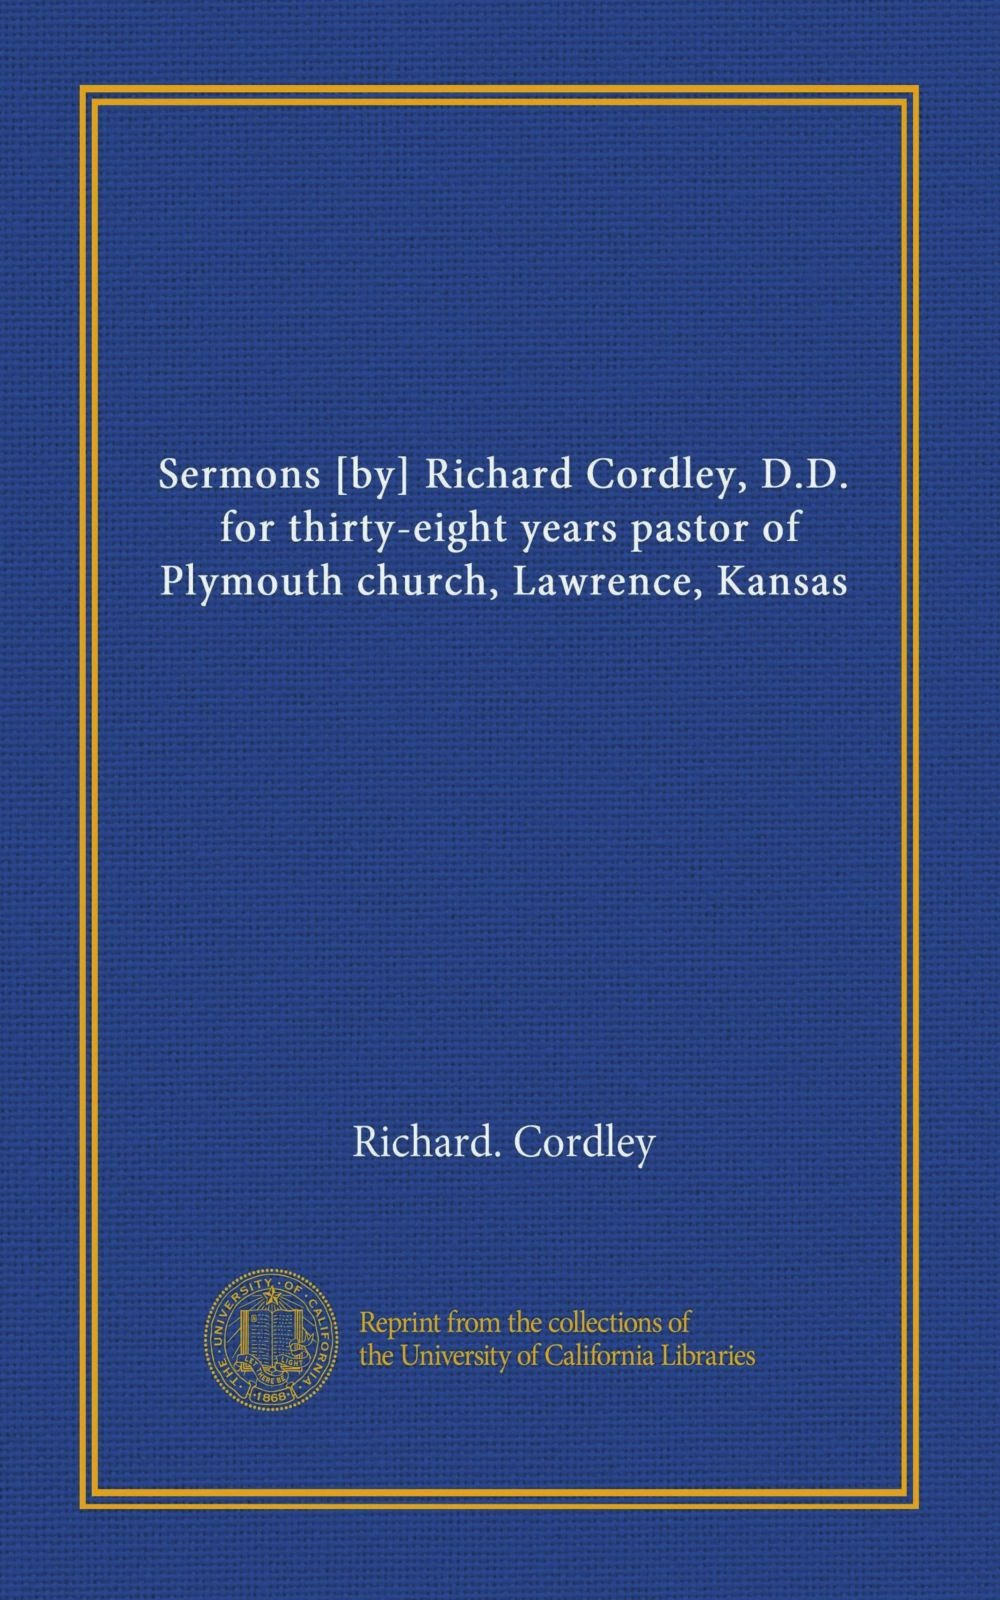 Sermons [by] Richard Cordley, D.D., for thirty-eight years pastor of Plymouth church, Lawrence, Kansas PDF